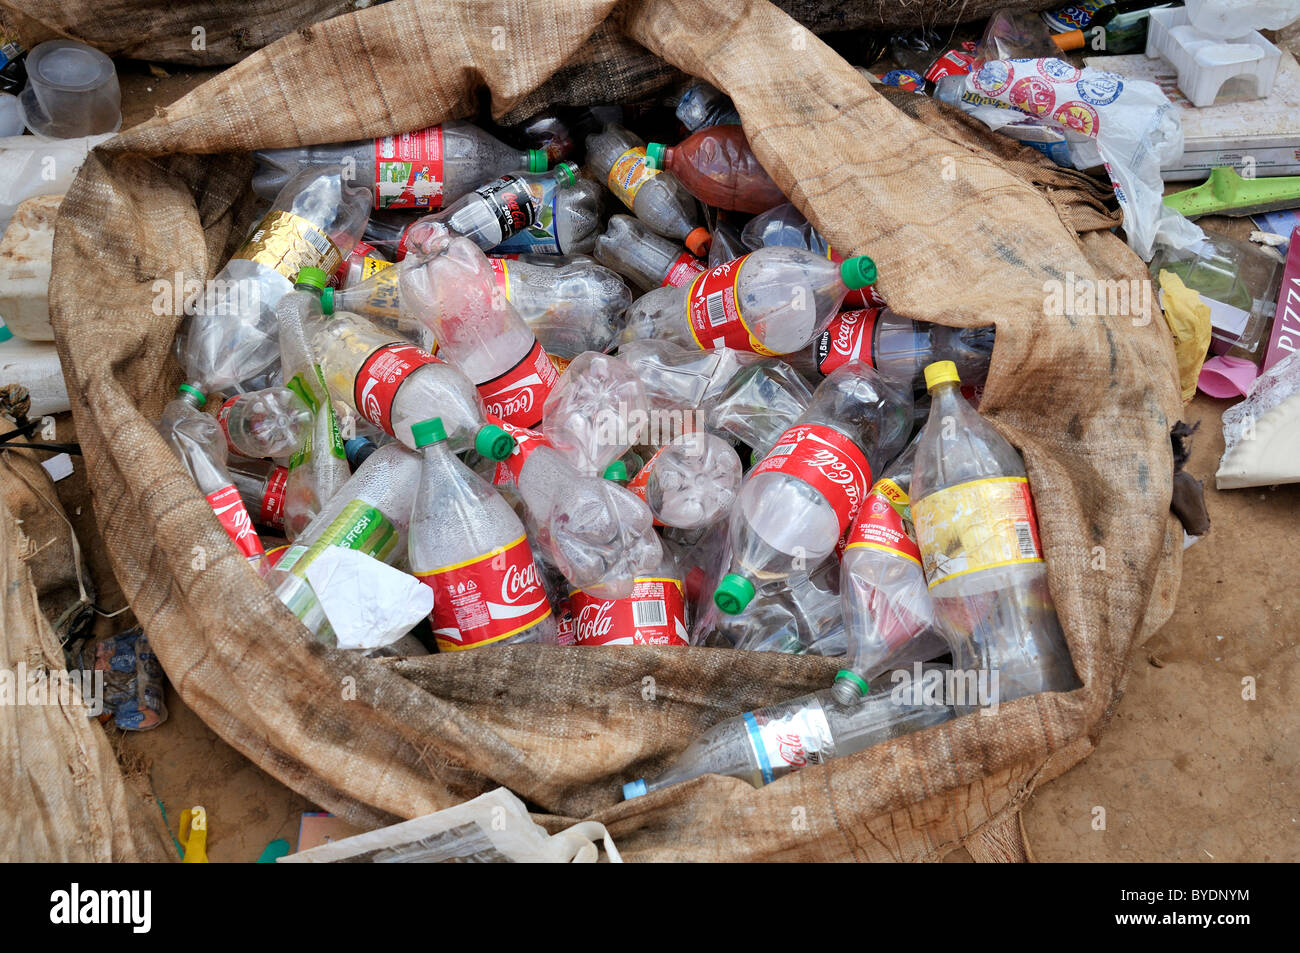 utilization of used plastic cups essay Read this essay on utilization of jackfruit and ipil-ipil seed come browse our large digital warehouse of free sample essays get the knowledge you need in order to pass your classes and more.